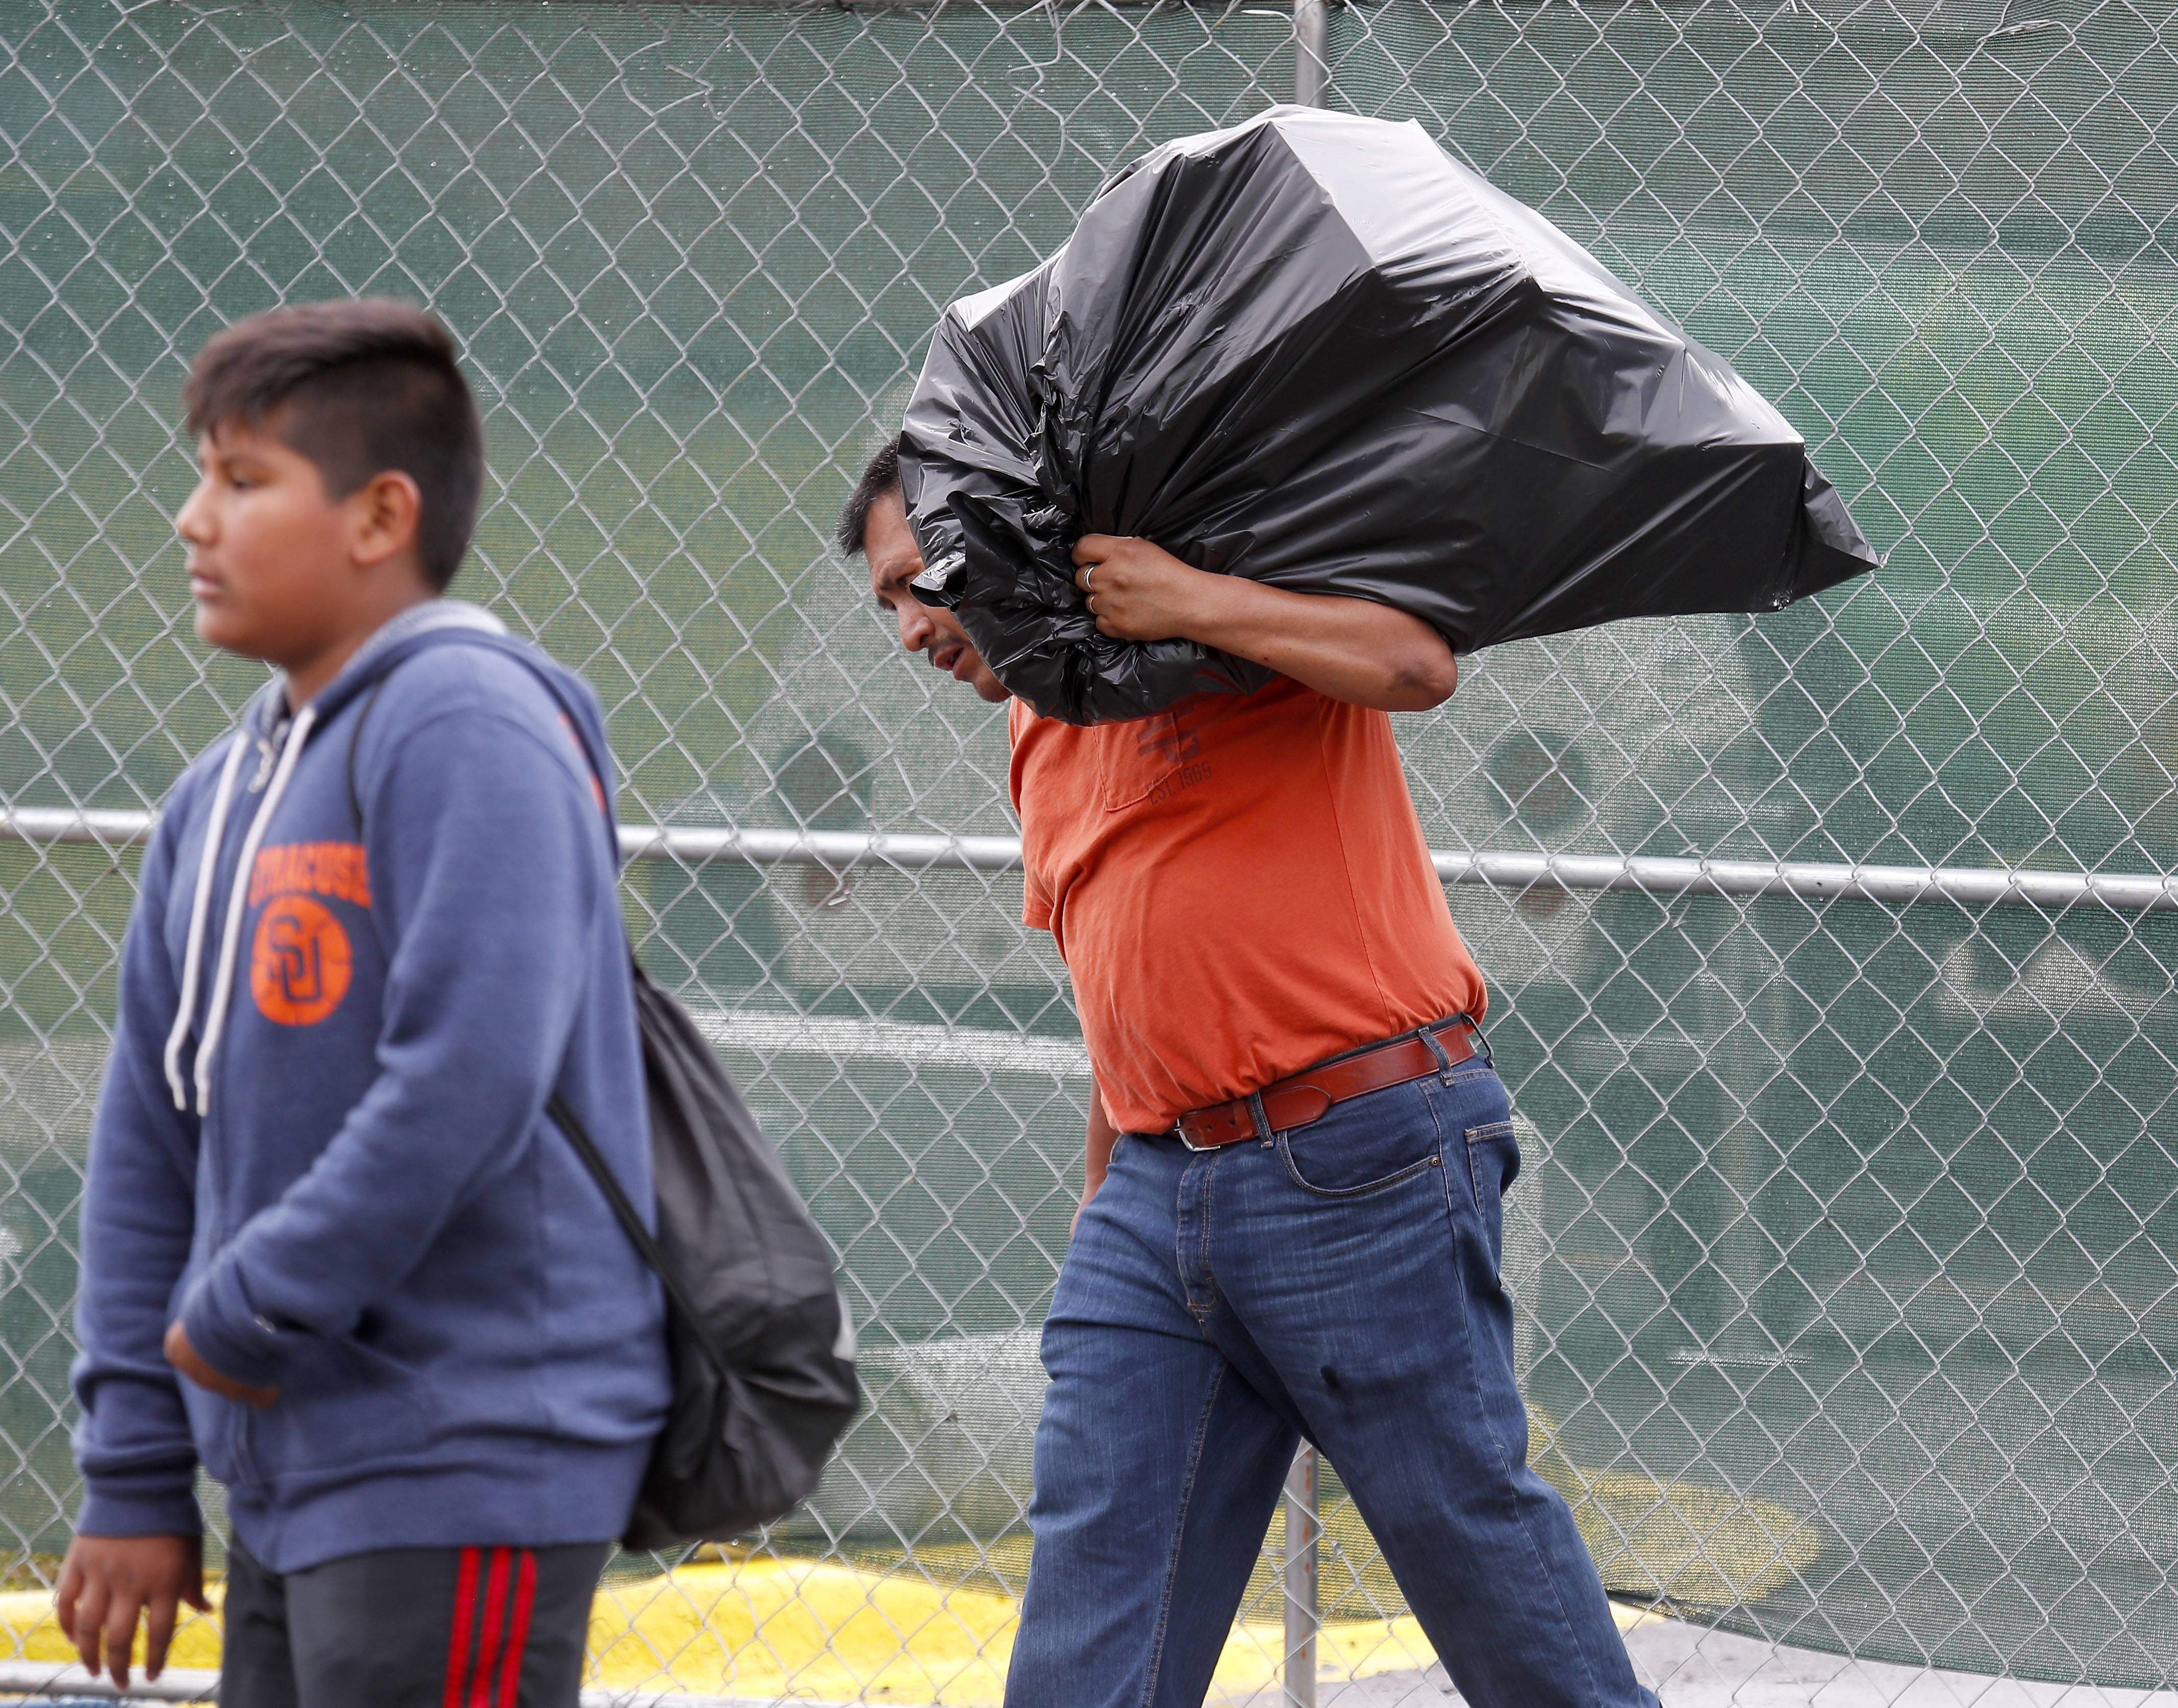 Rodrigo Pantoja, right, and his son David, 12, carry some of their belongings from the scene of a large fire at River Trails condominium complex in Prospect Heights. Pantoja has lived there for more than 20 years.